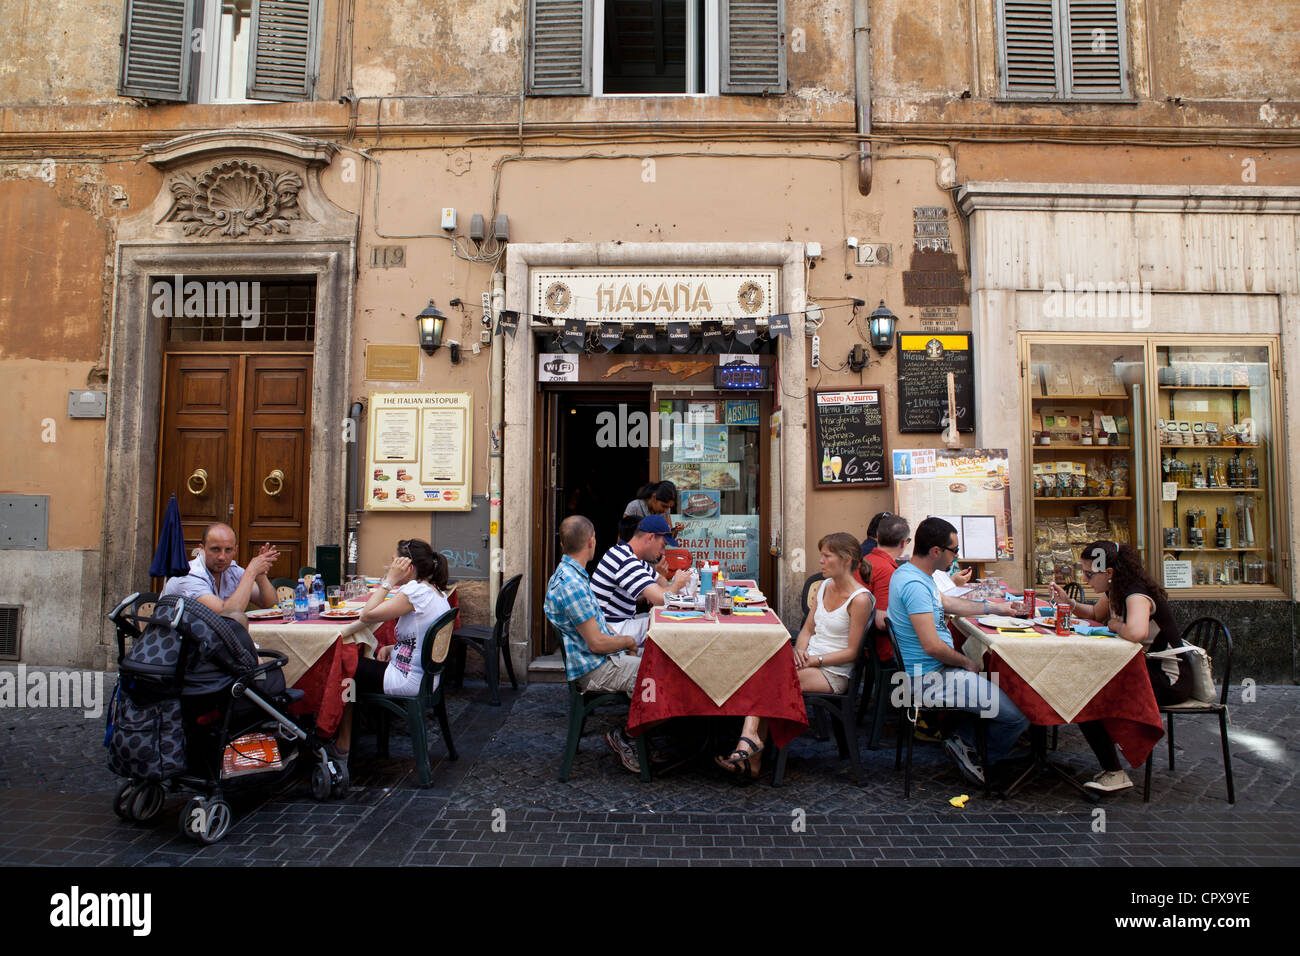 Diners eating al-fresco in Rome - Stock Image